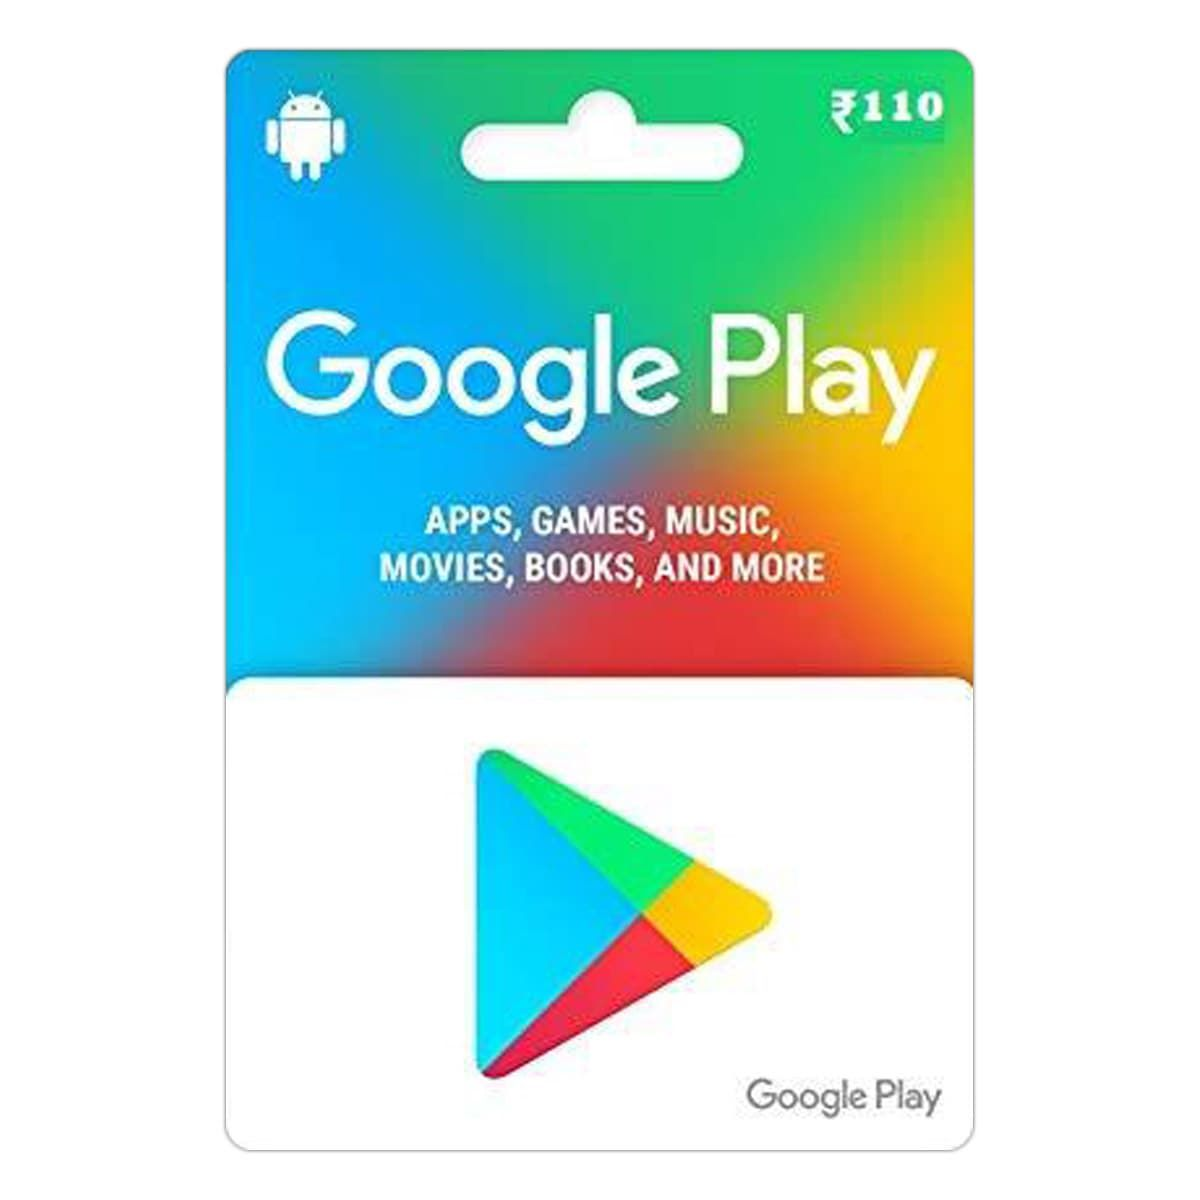 Free 100 google play gift card 2020 in 2020 Google play